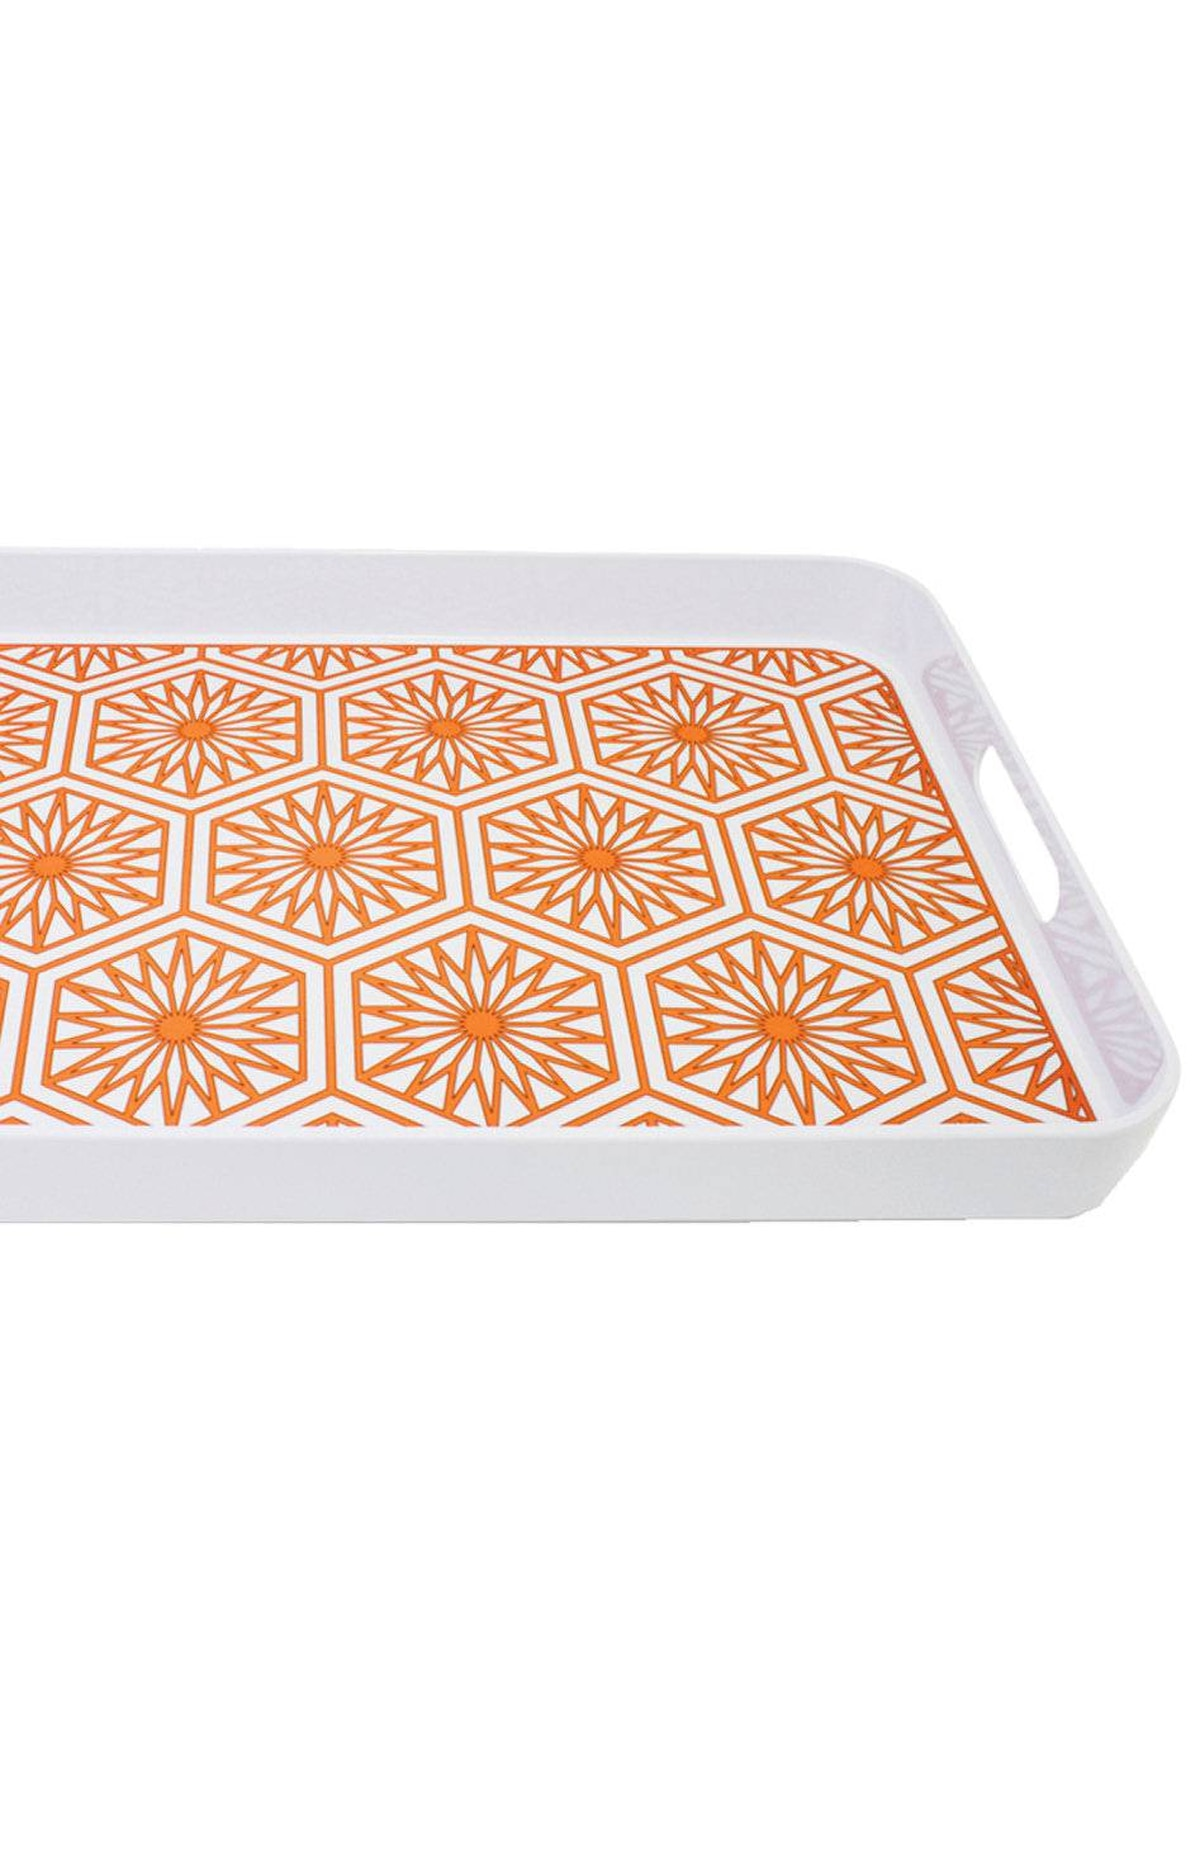 Make cocktail hour livelier than usual with a heavy-duty tray in a punchy pattern. Jonathan Adler Positano melamine serving tray, $48 through www.jonathanadler.com.